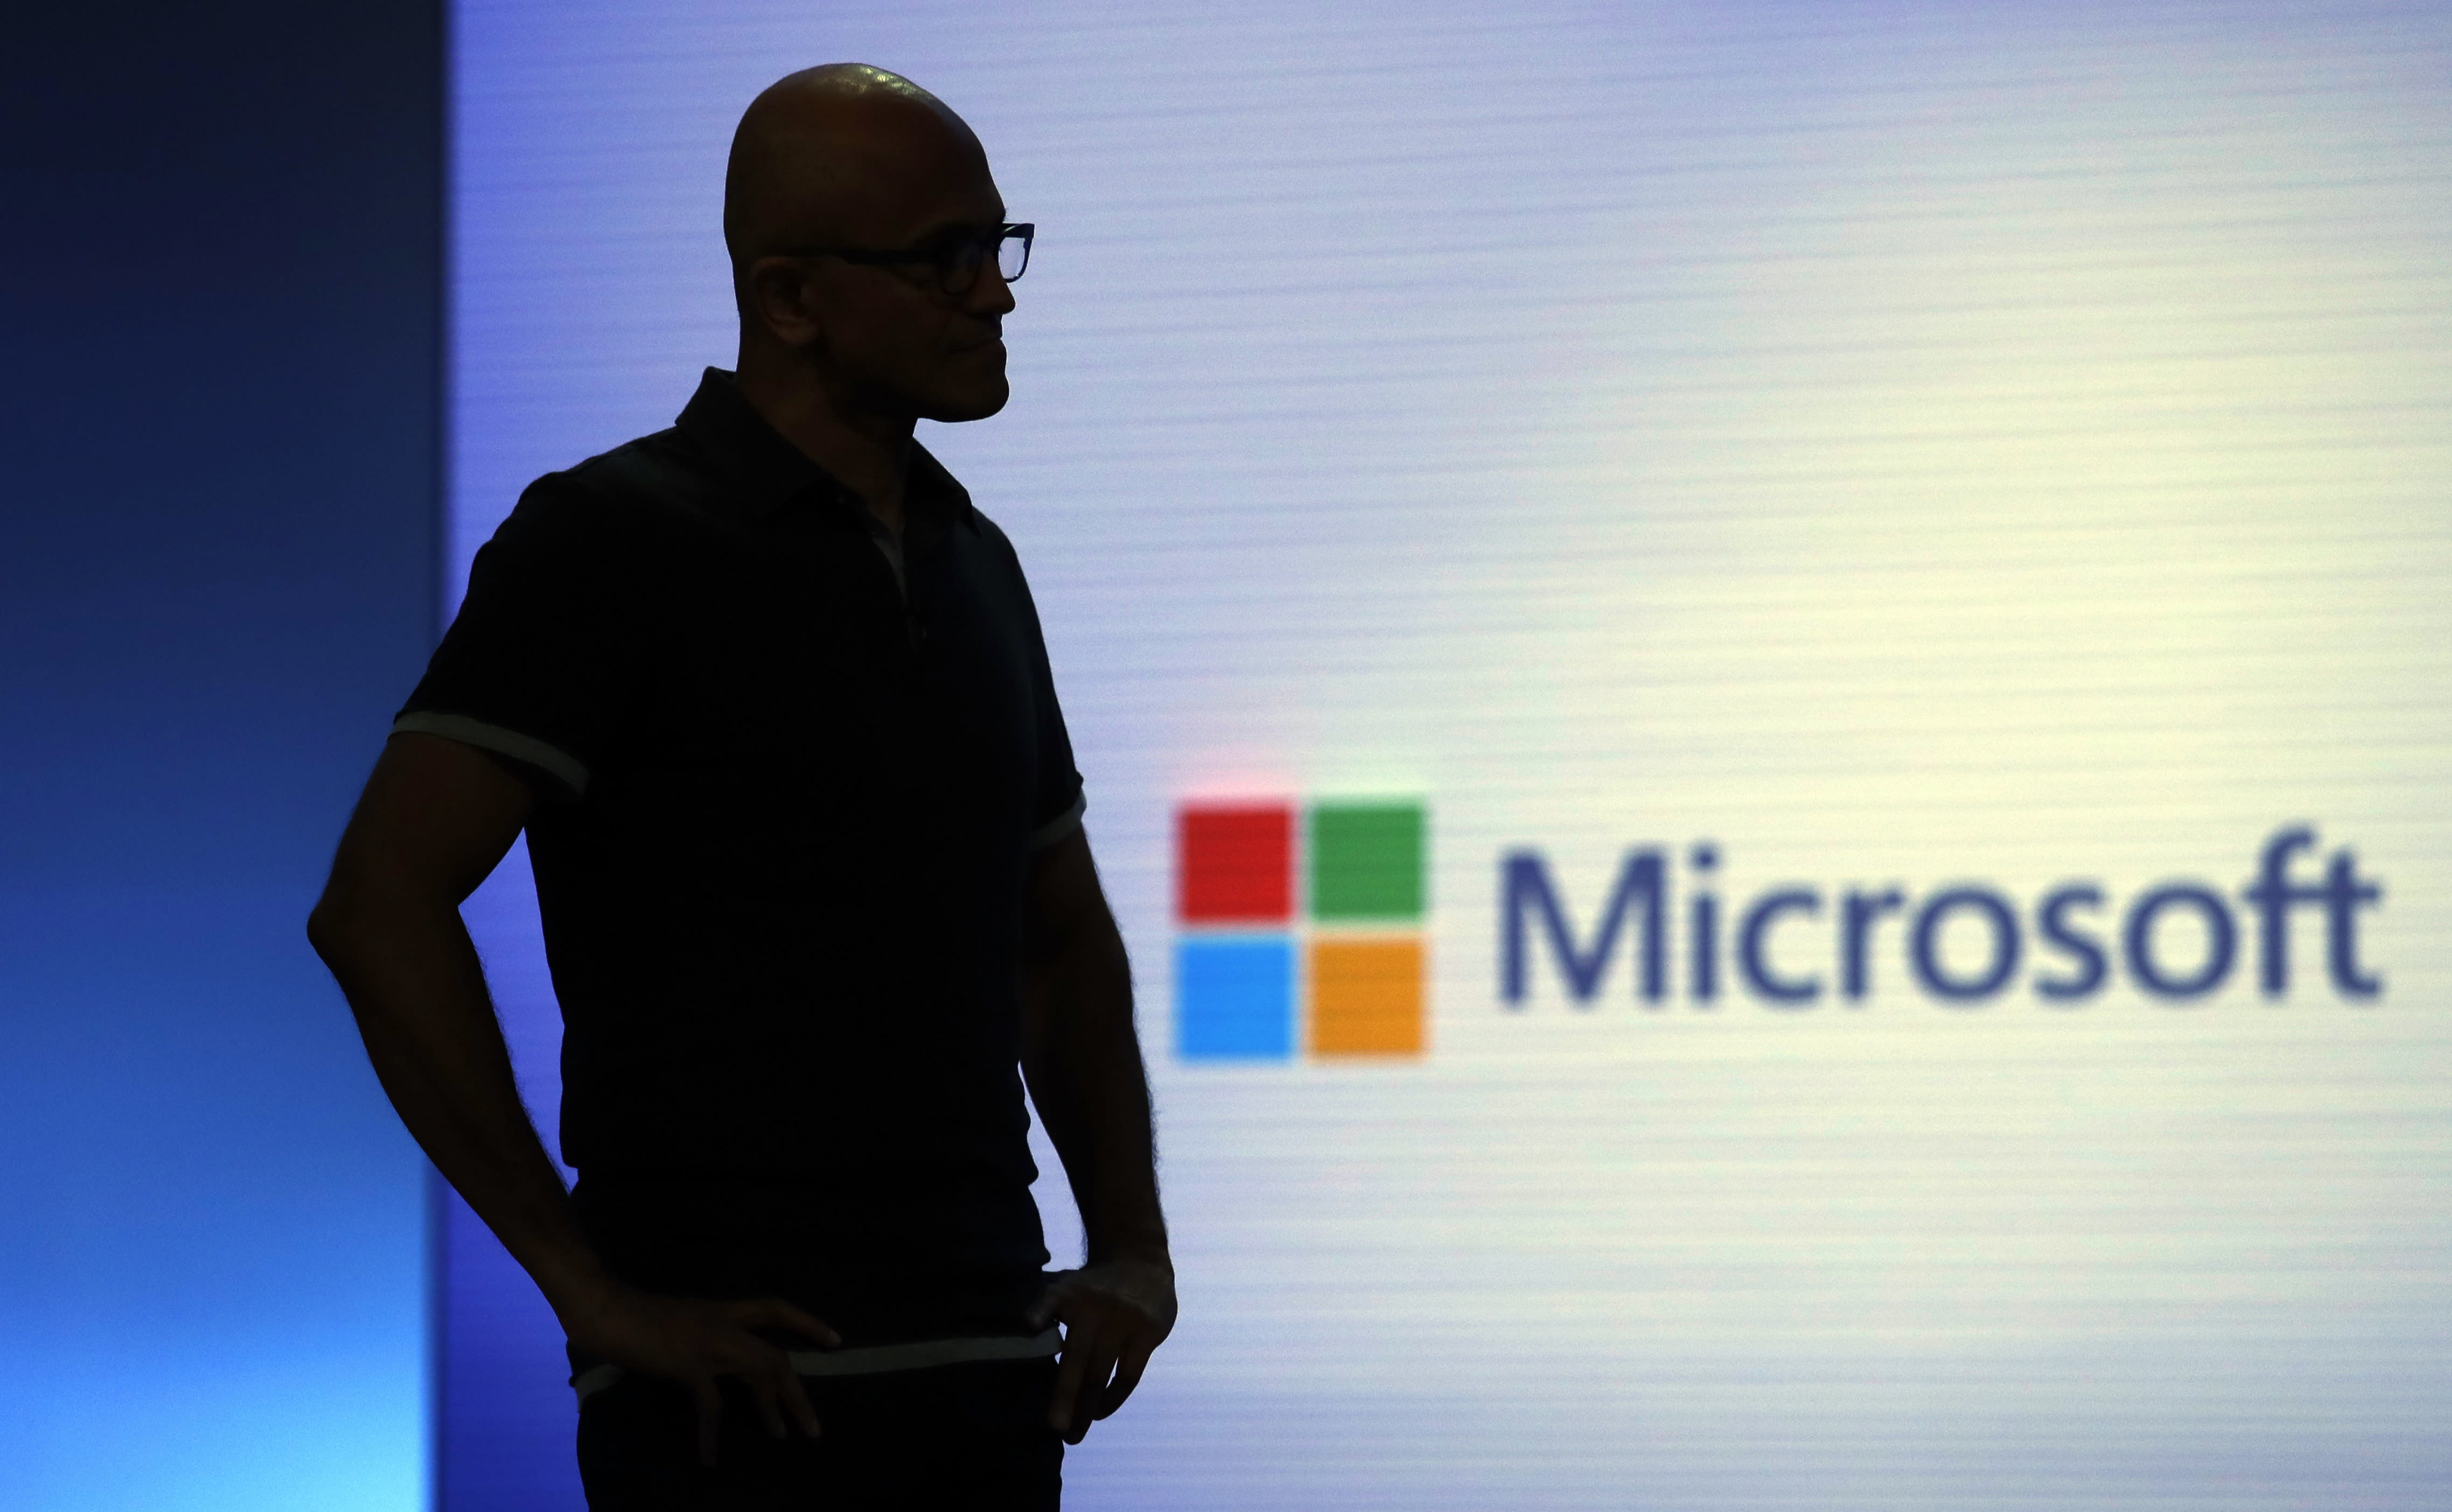 The forgotten FAANG: How Microsoft caught up to Apple